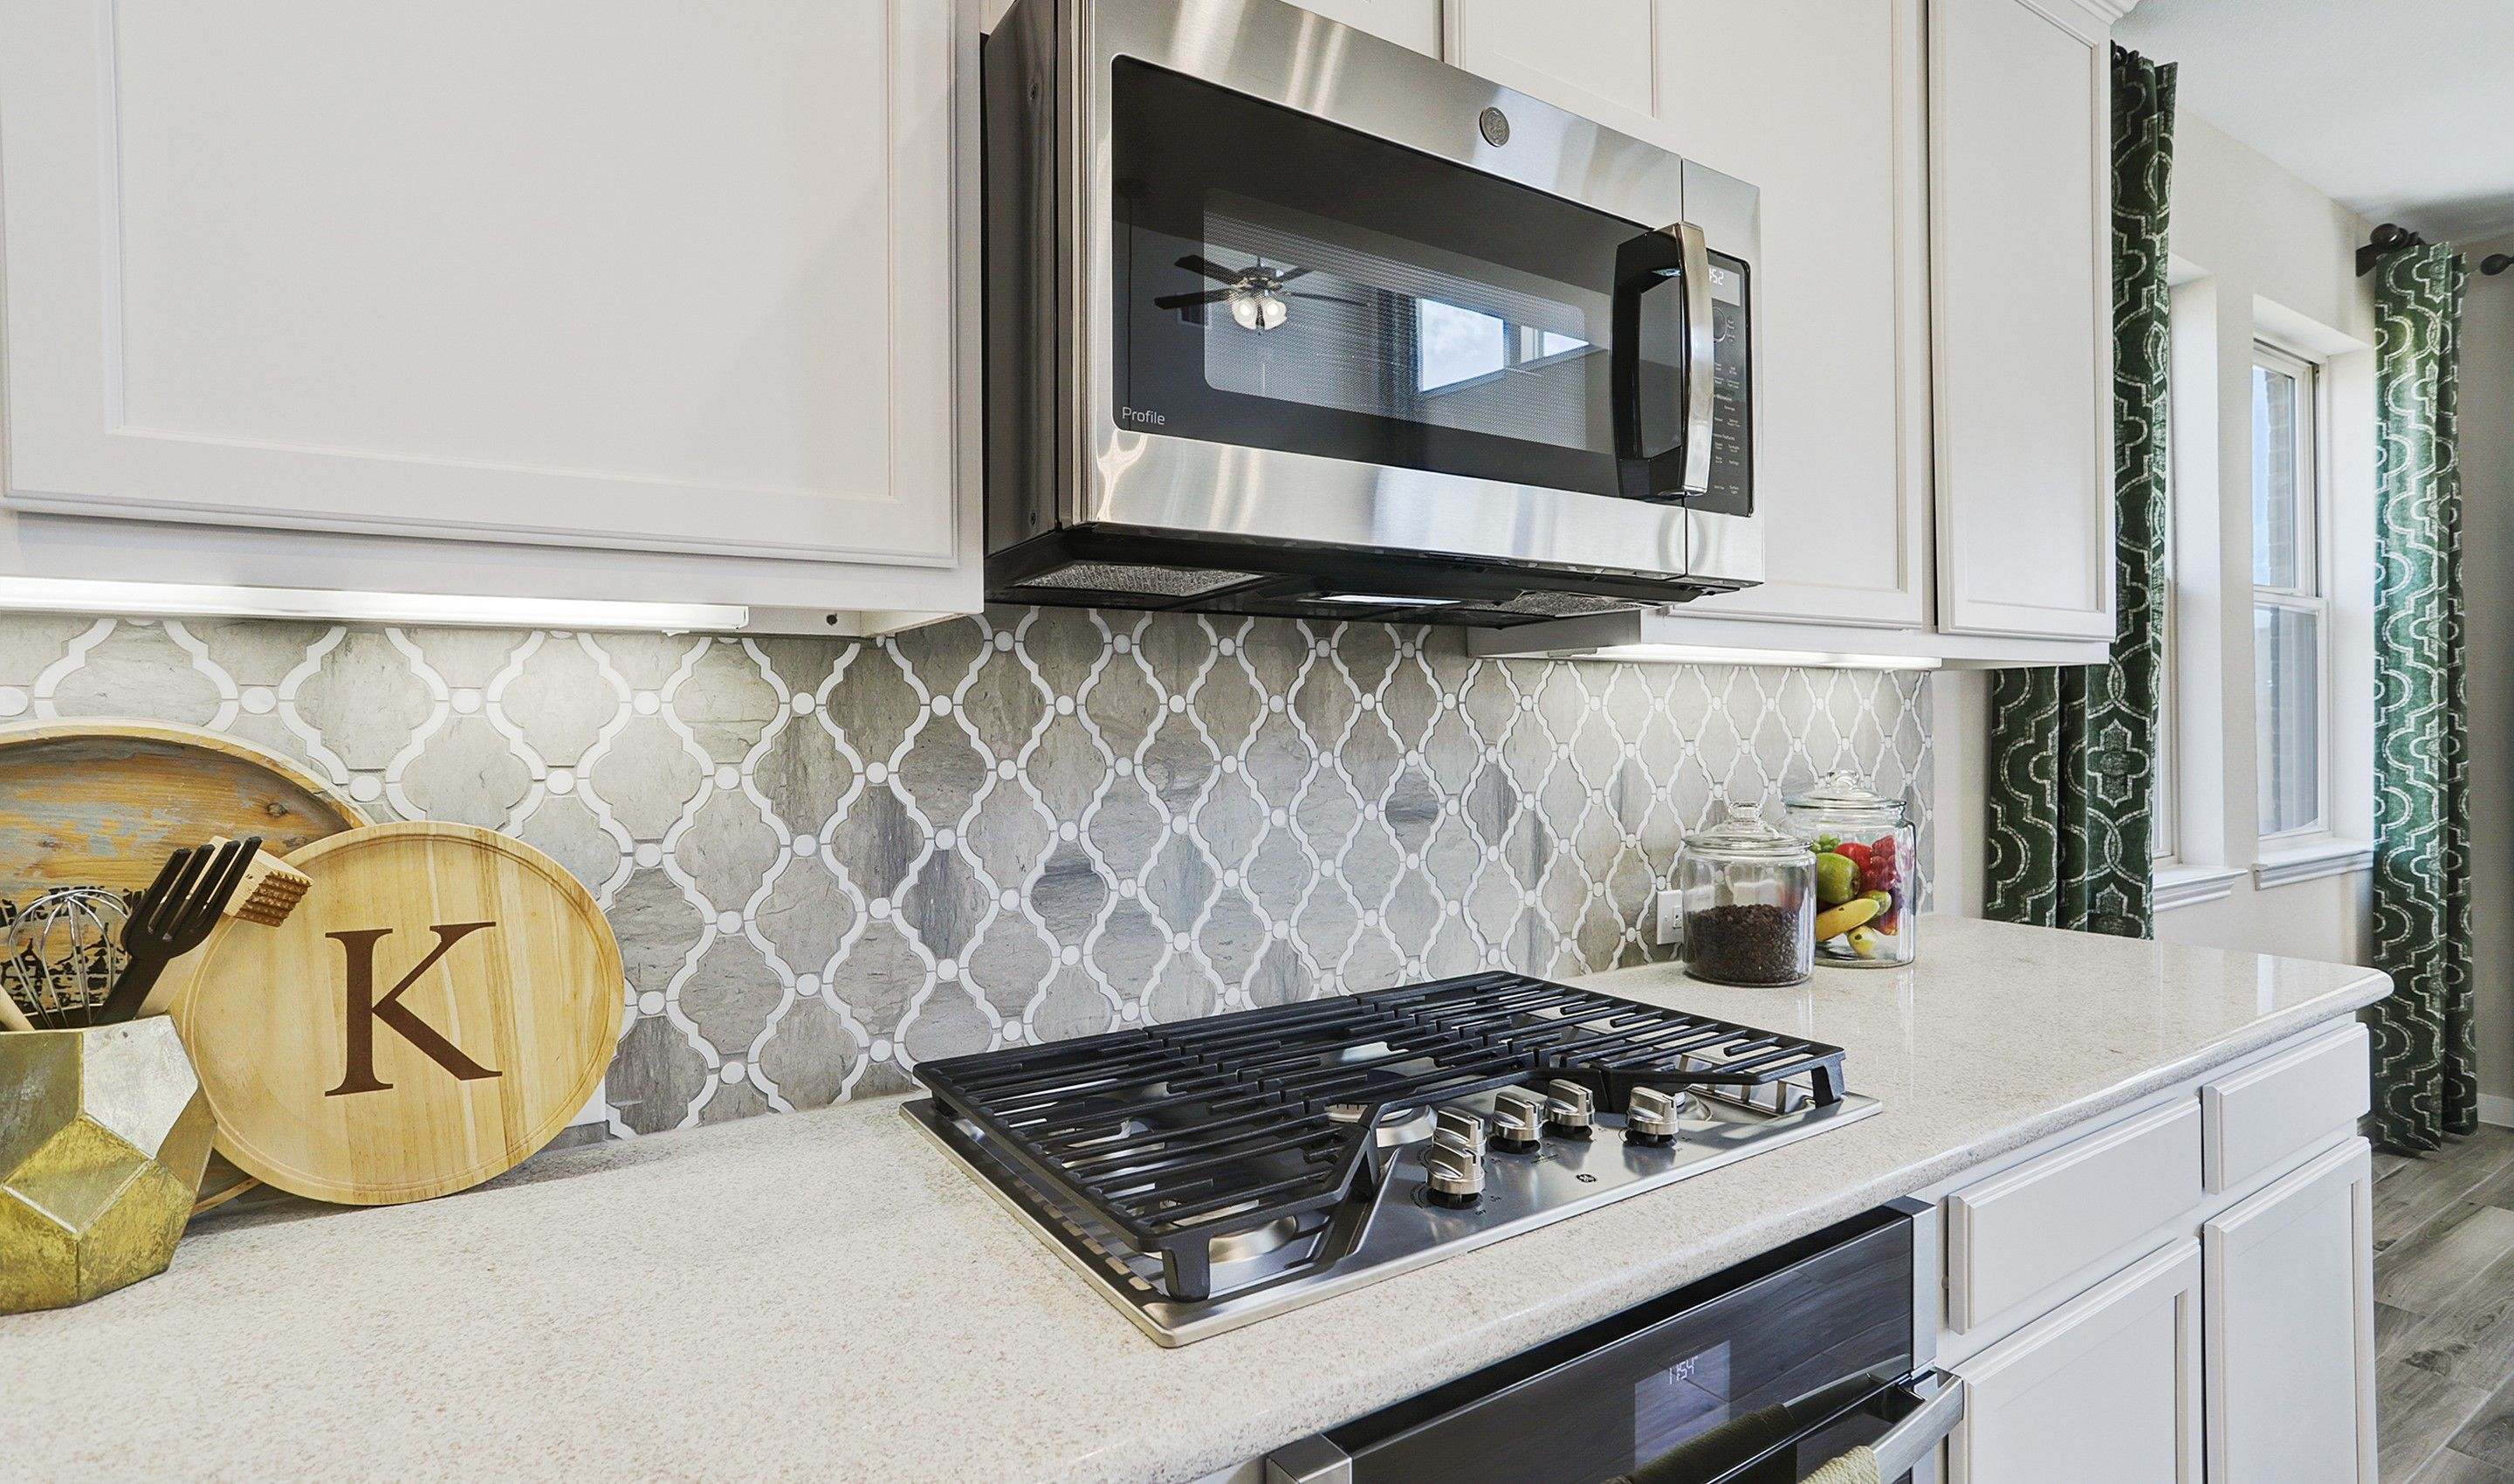 Kitchen featured in the Walton II By K. Hovnanian® Homes in Brazoria, TX